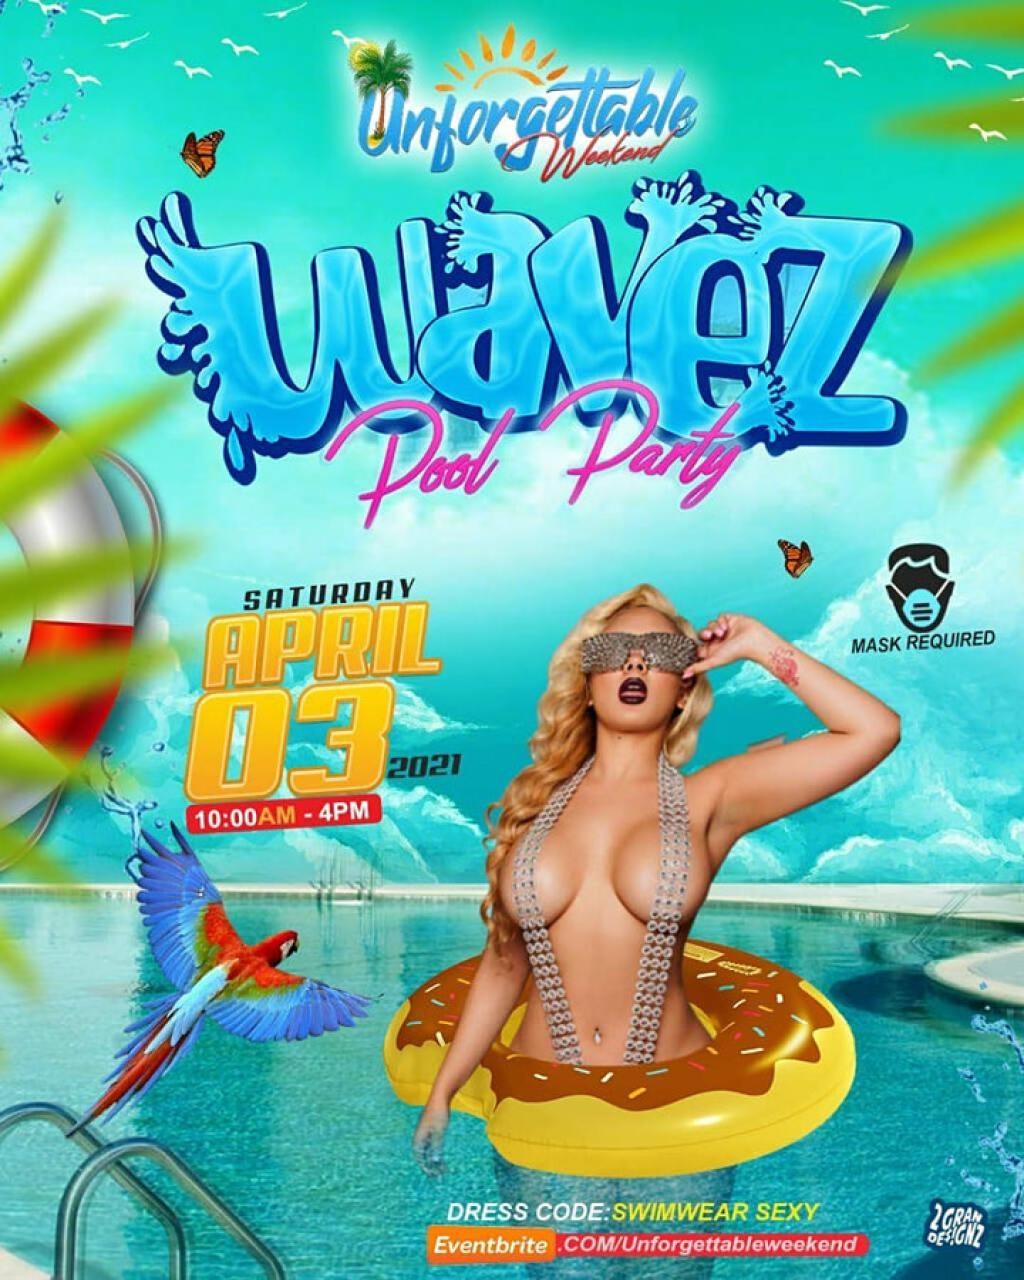 Unforgettable Weekend - Wave Pool Party flyer or graphic.